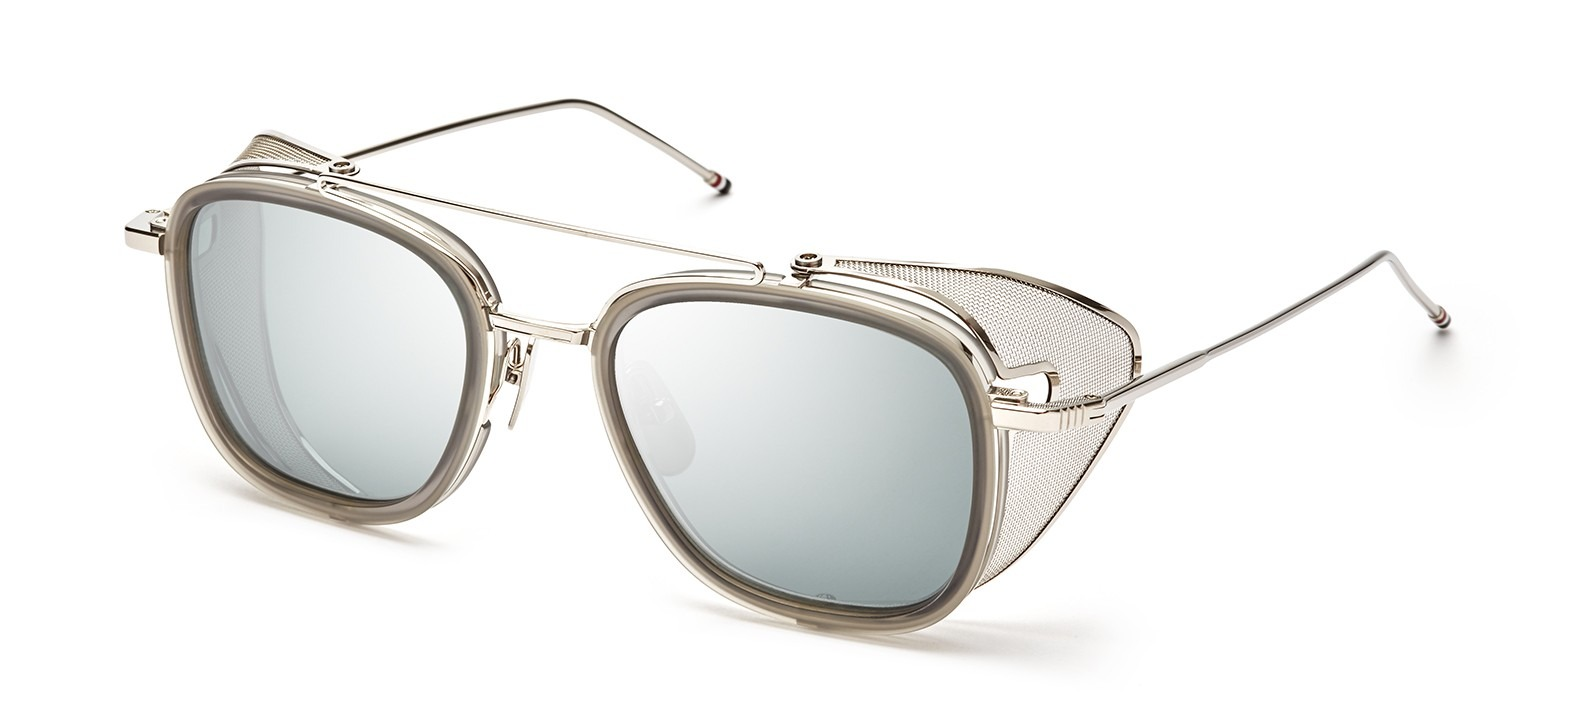 Thom Browne Shield Lens Sunglasses